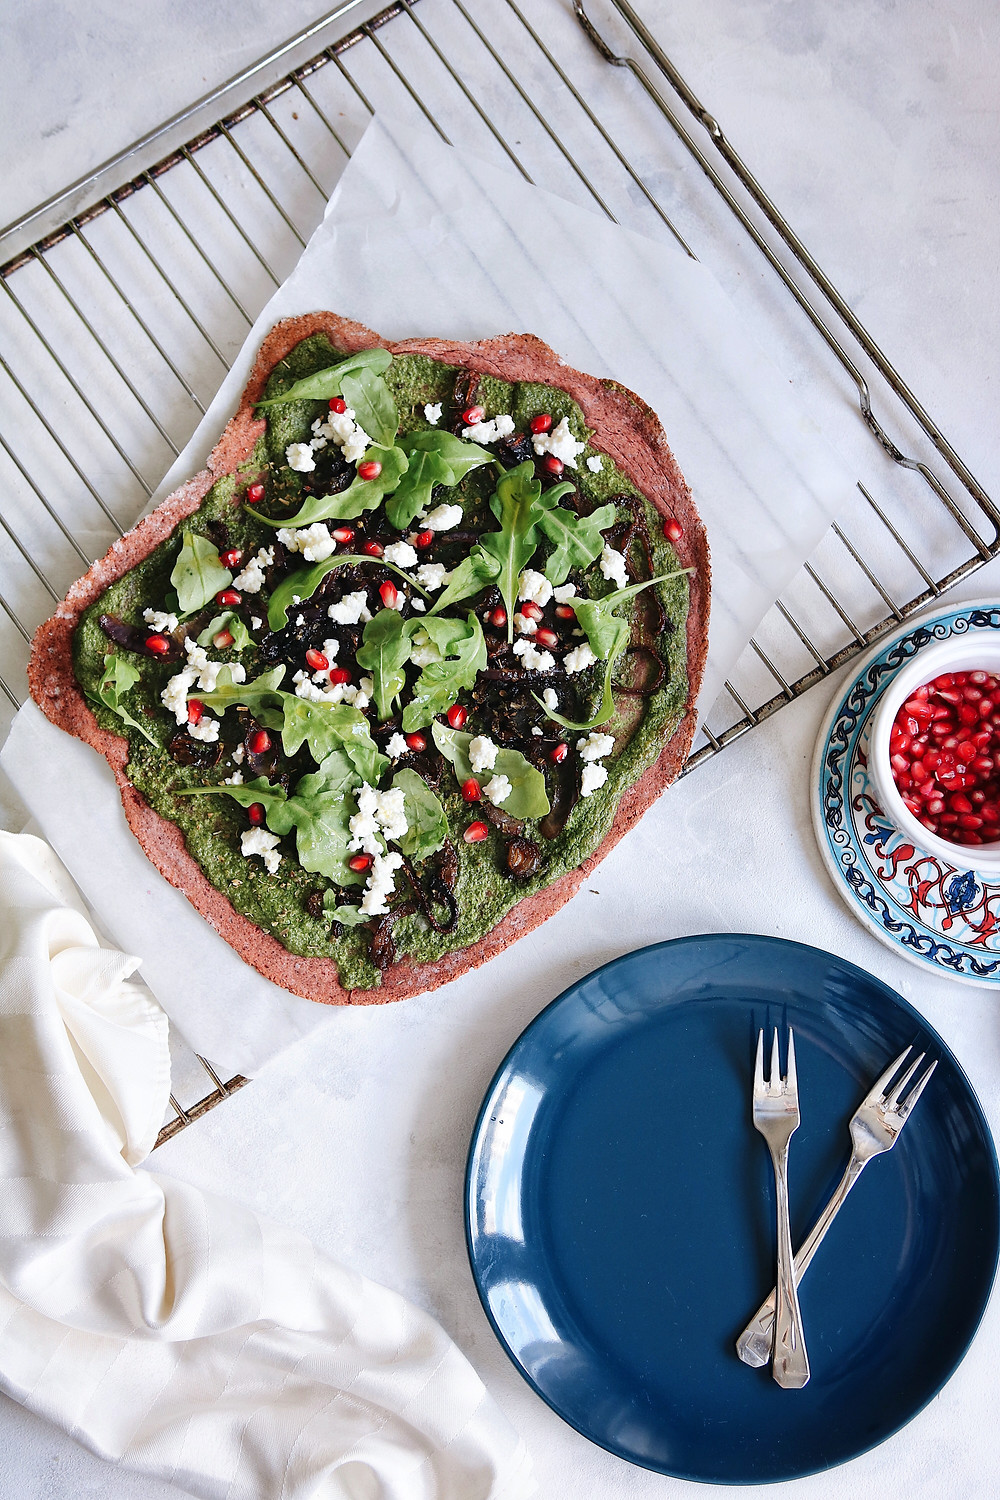 A beetroot crust pizza on a white backround, a cooling rack, blue plate and pomegranate seeds on the side.